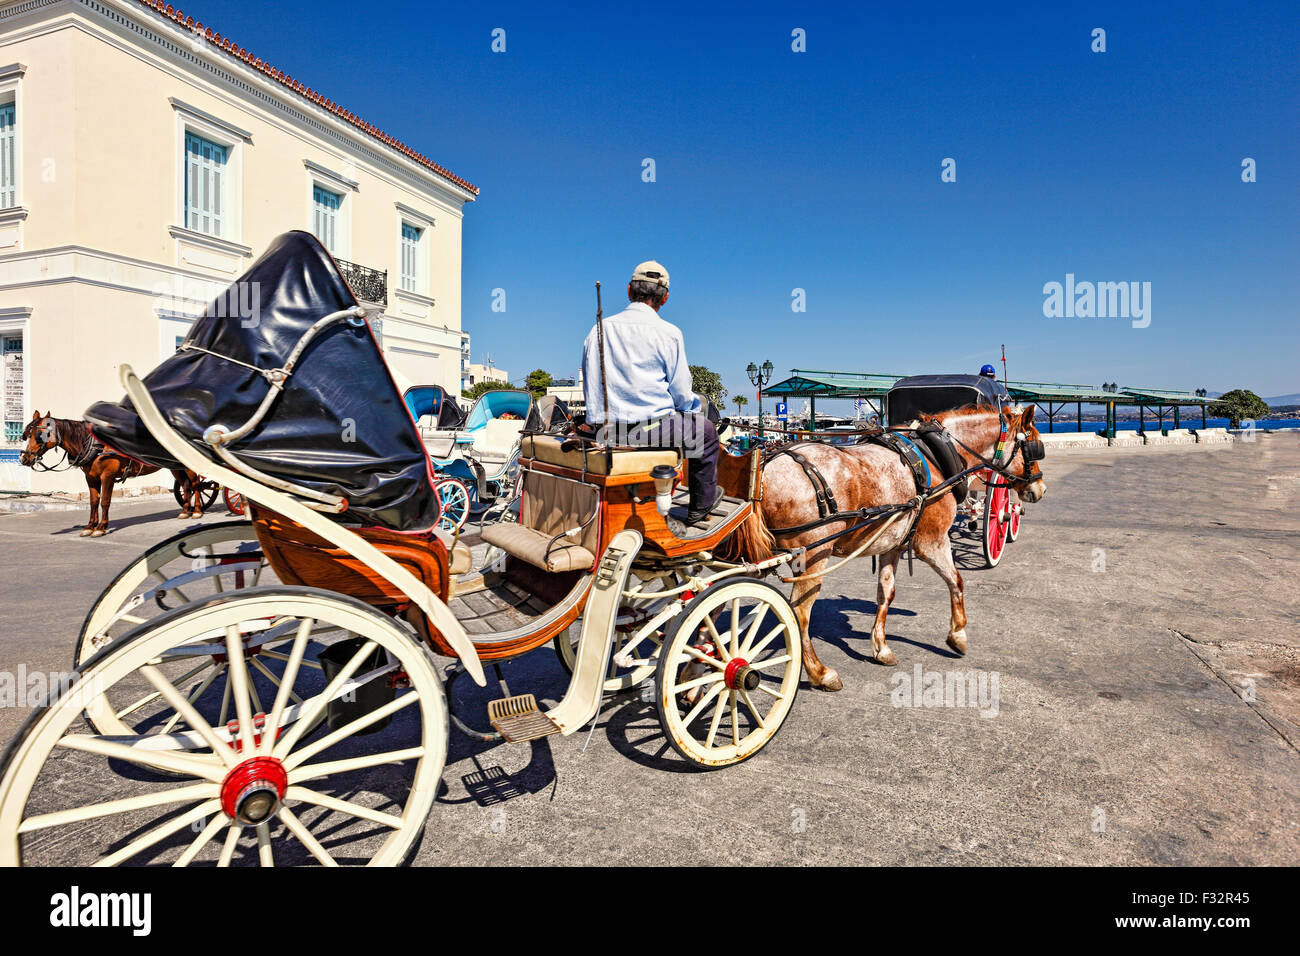 A horse drawn carriage in the city of Spetses island, Greece - Stock Image